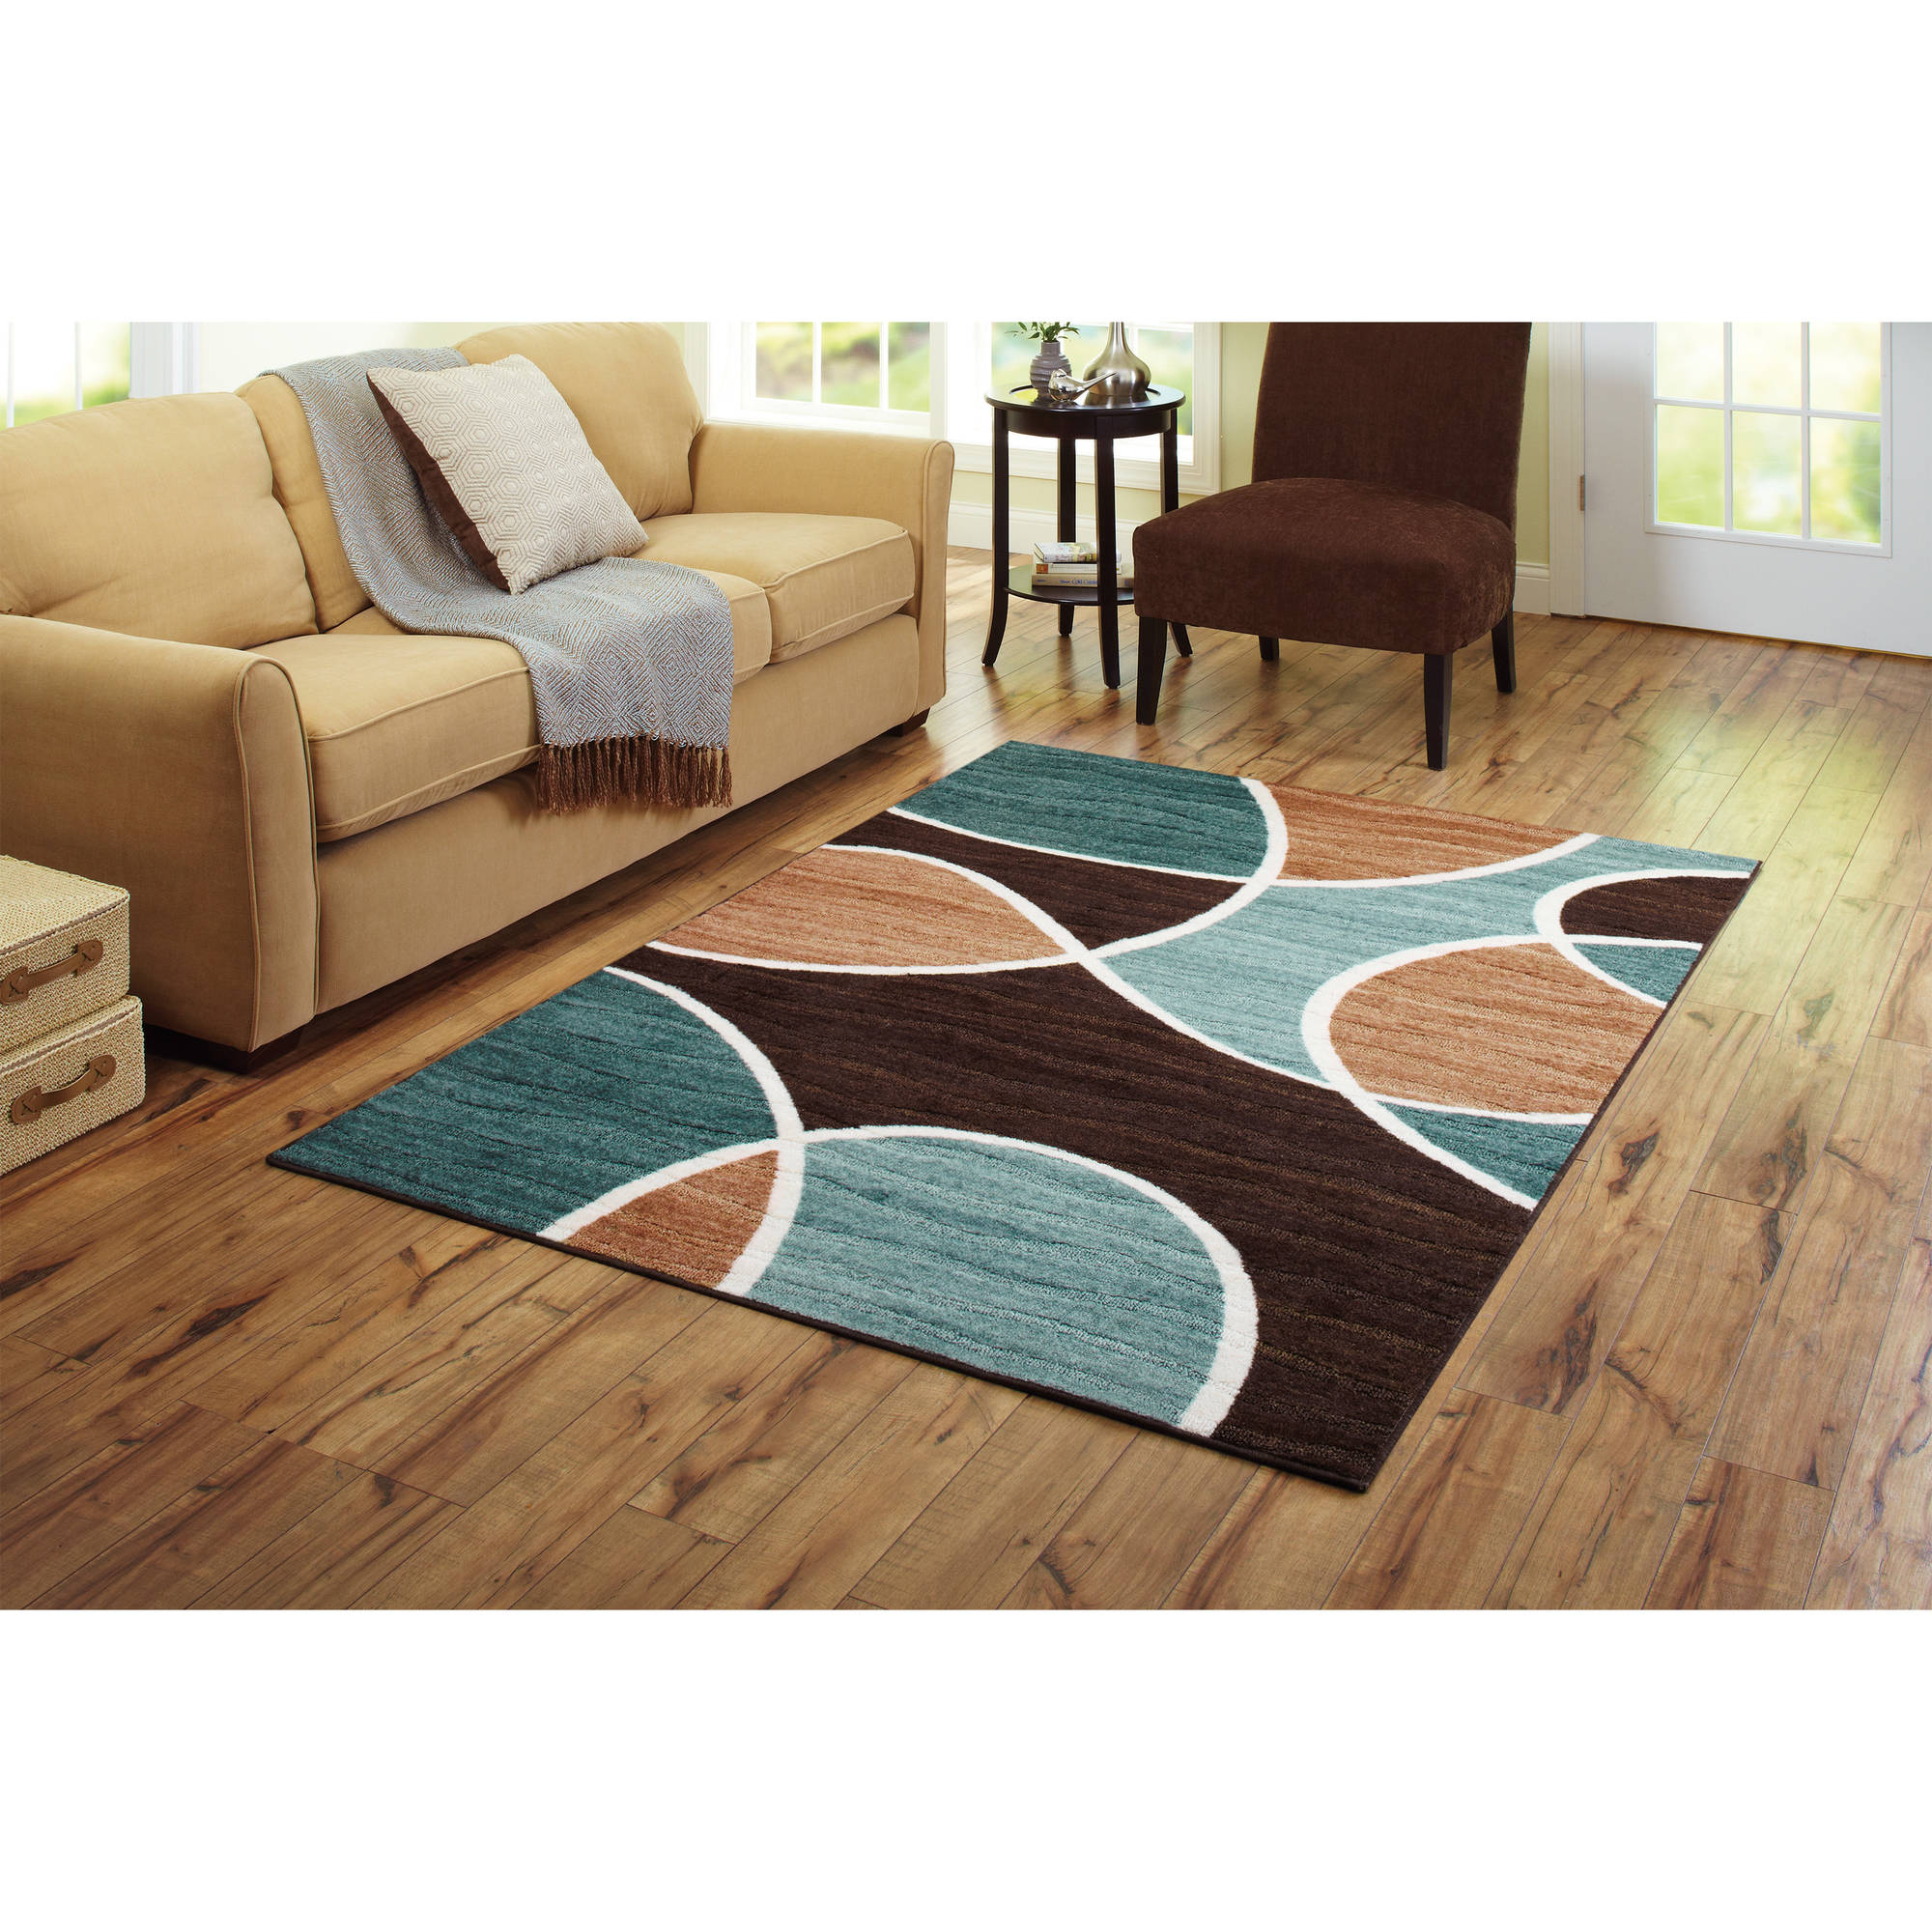 8 215 10 Roselawnlutheran 8x10 Rug Uniquely Modern Professional Archives Philadelphia House Cleaning Service